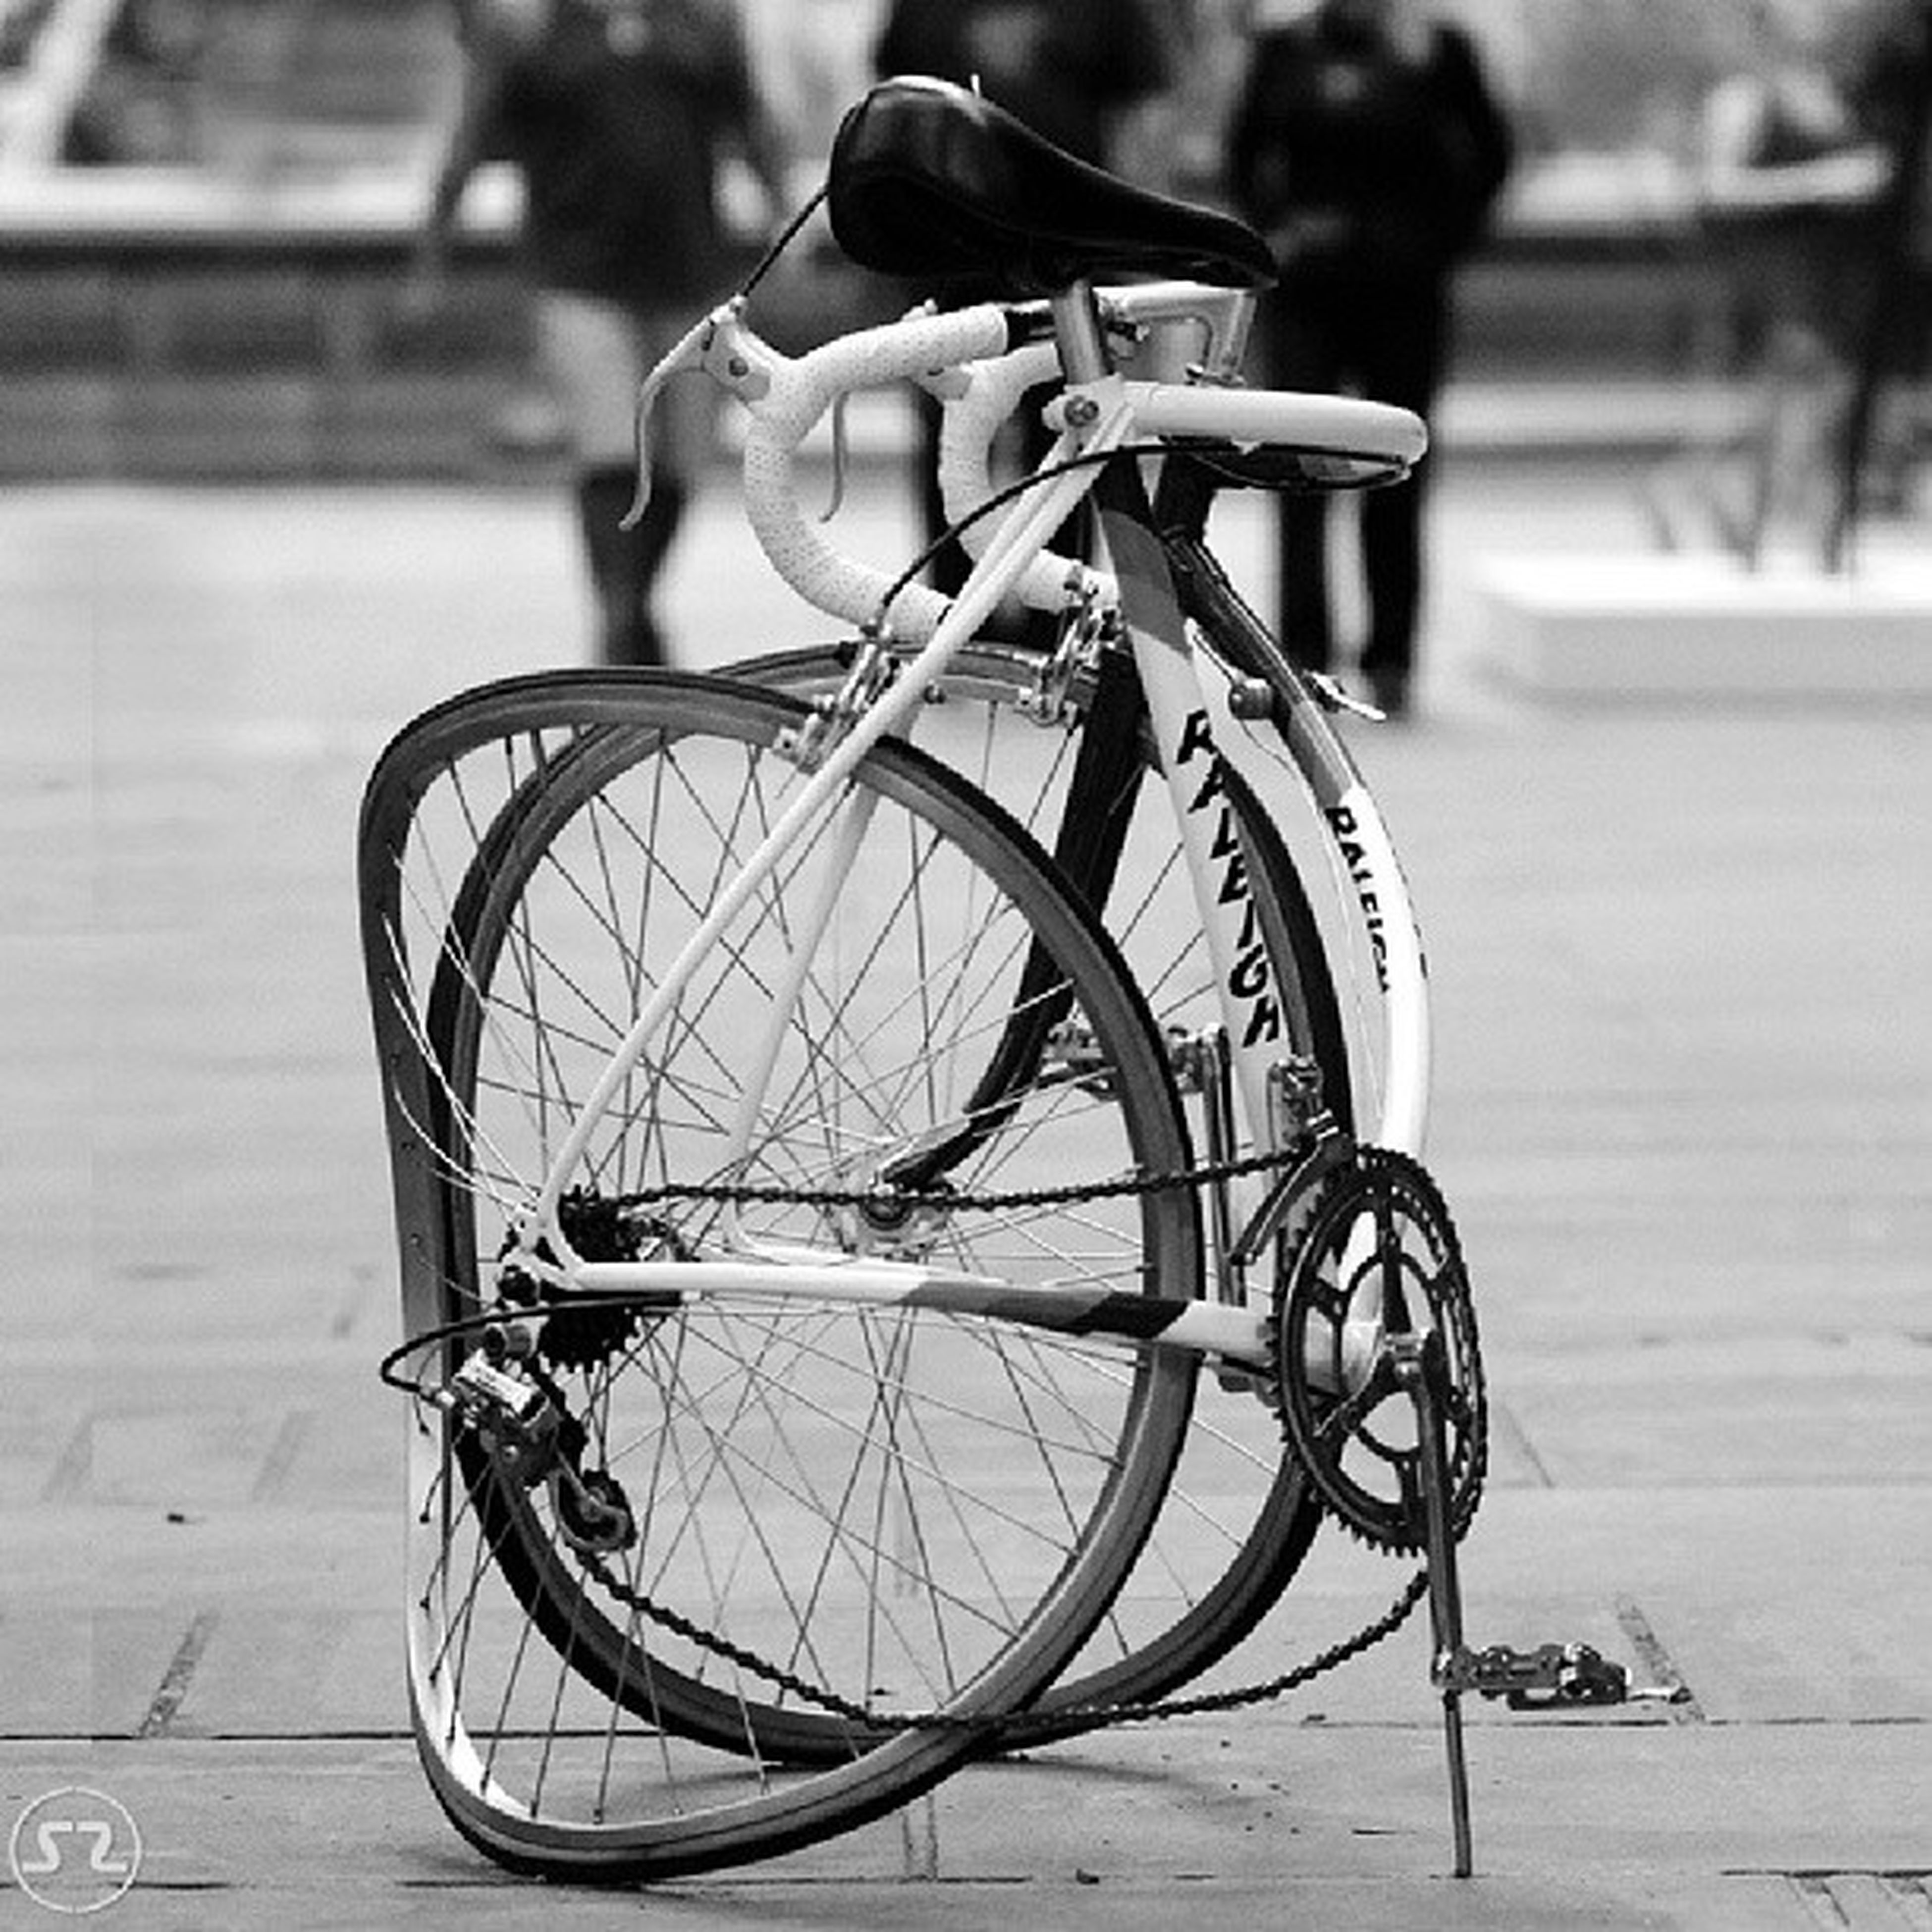 bicycle, transportation, mode of transport, land vehicle, stationary, focus on foreground, parking, parked, wheel, street, metal, close-up, day, outdoors, no people, absence, travel, sunlight, tire, selective focus